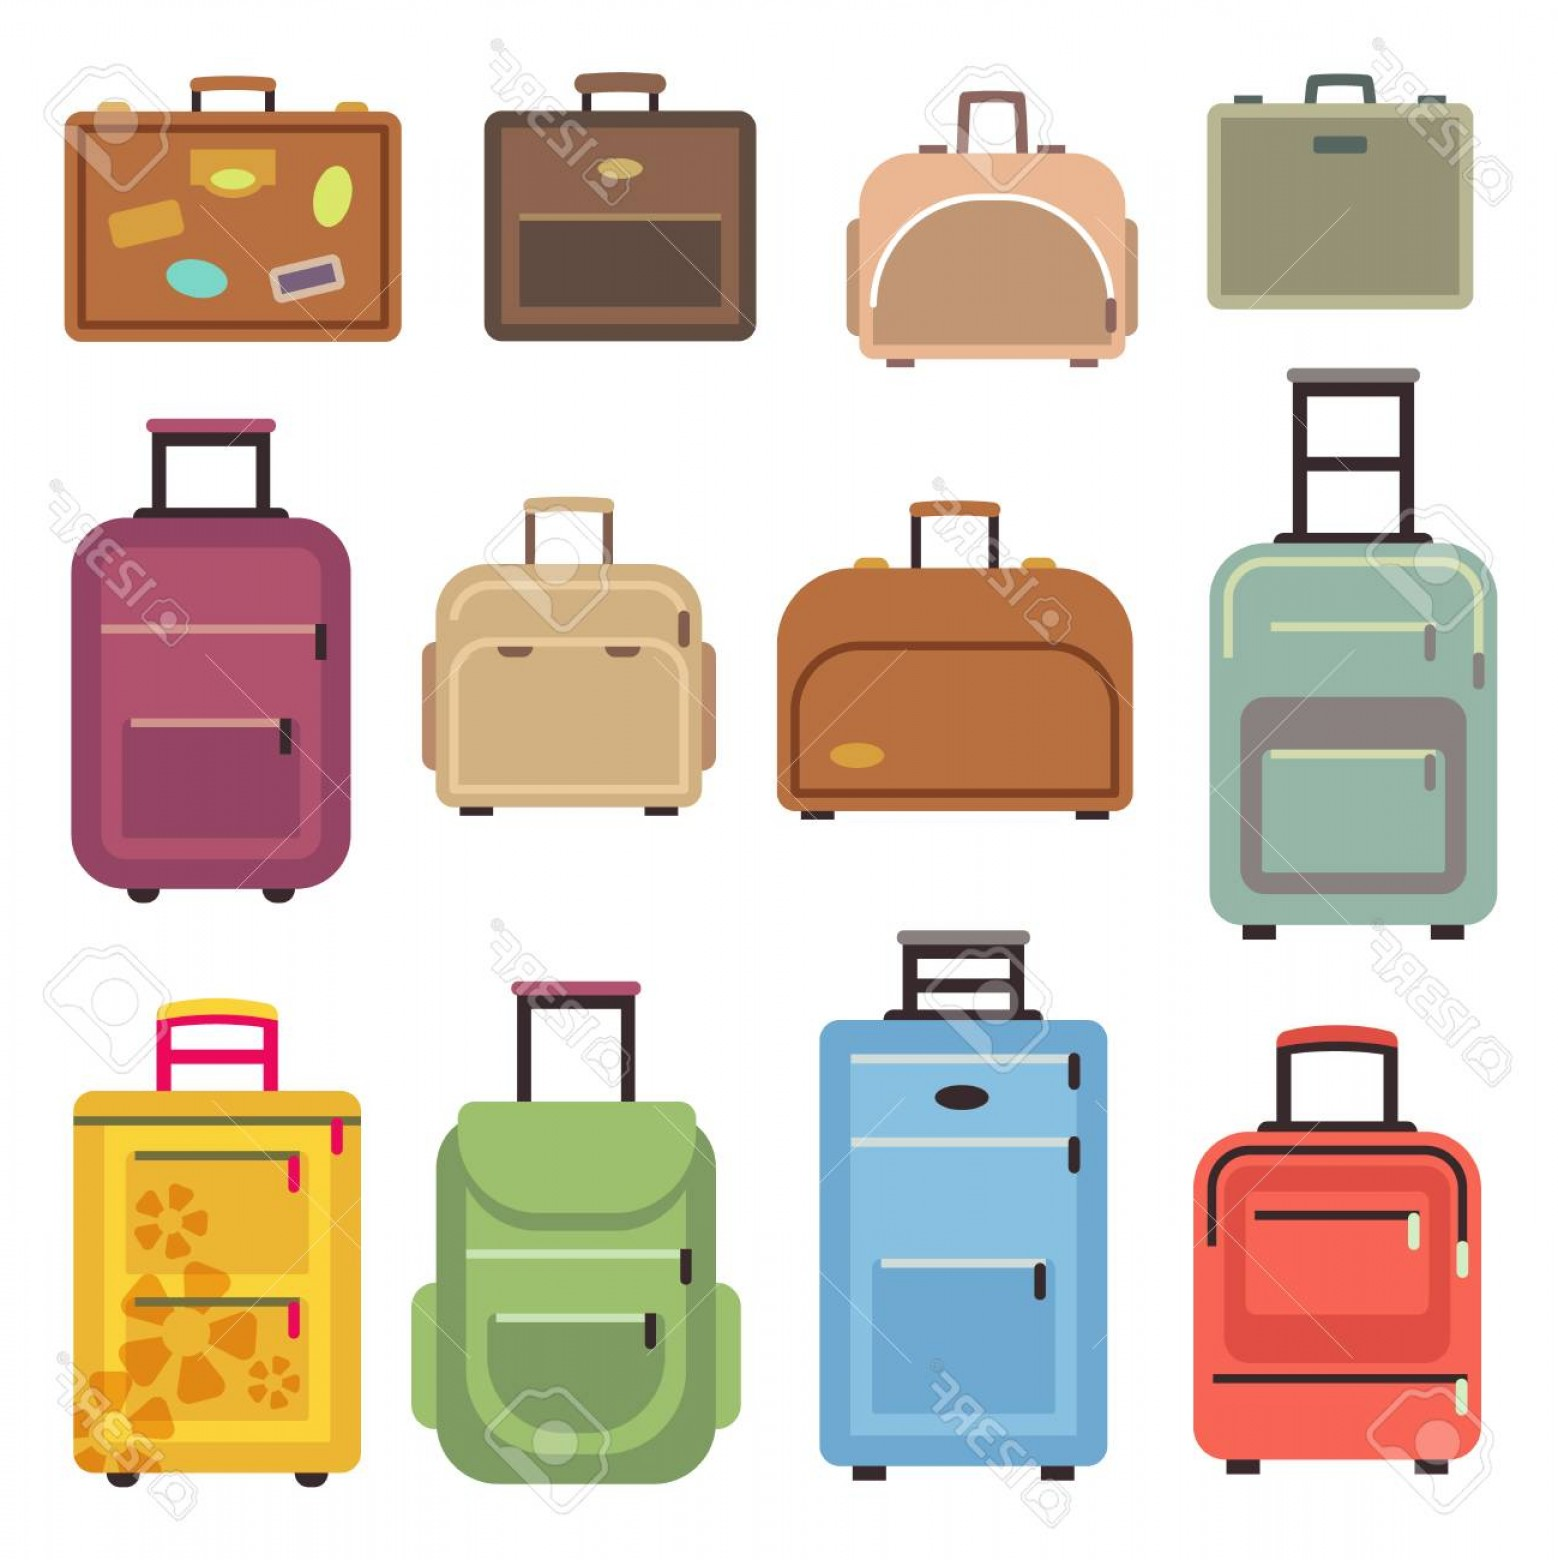 Vintage Luggage Vector: Photostock Vector Travel Luggage And Set Of Travel Bag Suitcase Vector Flat Icons Illustration